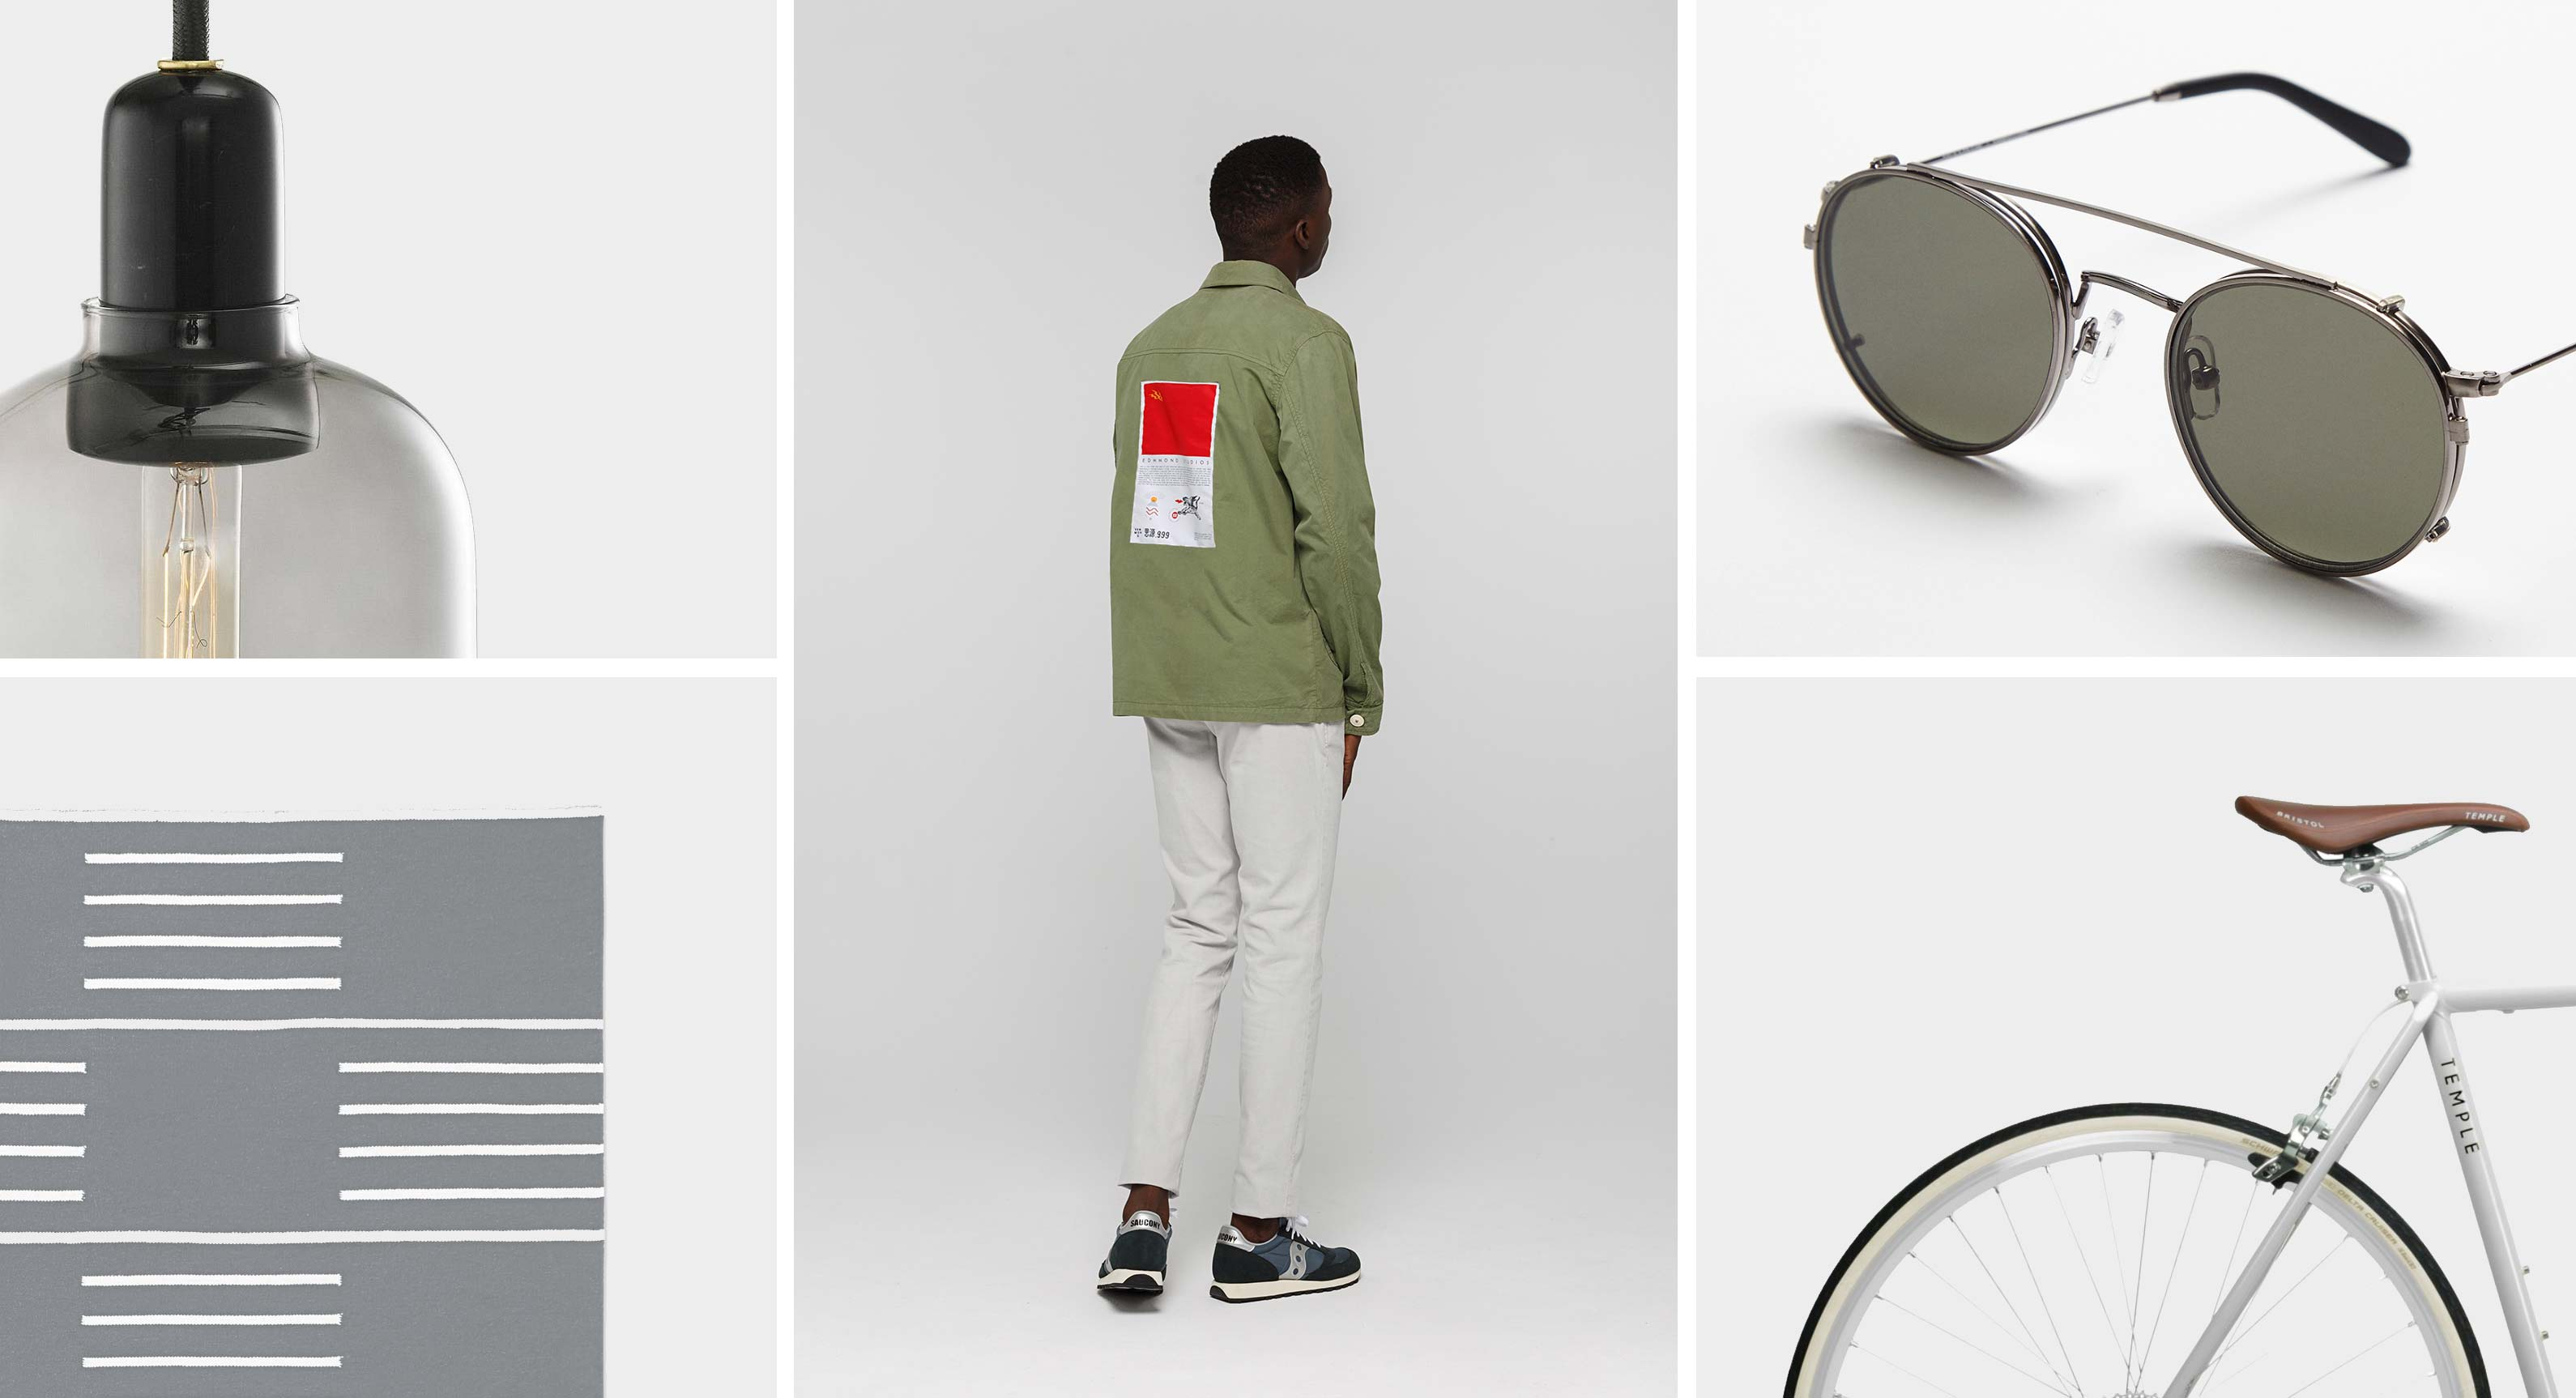 The Top 5 Items To Drop This Week